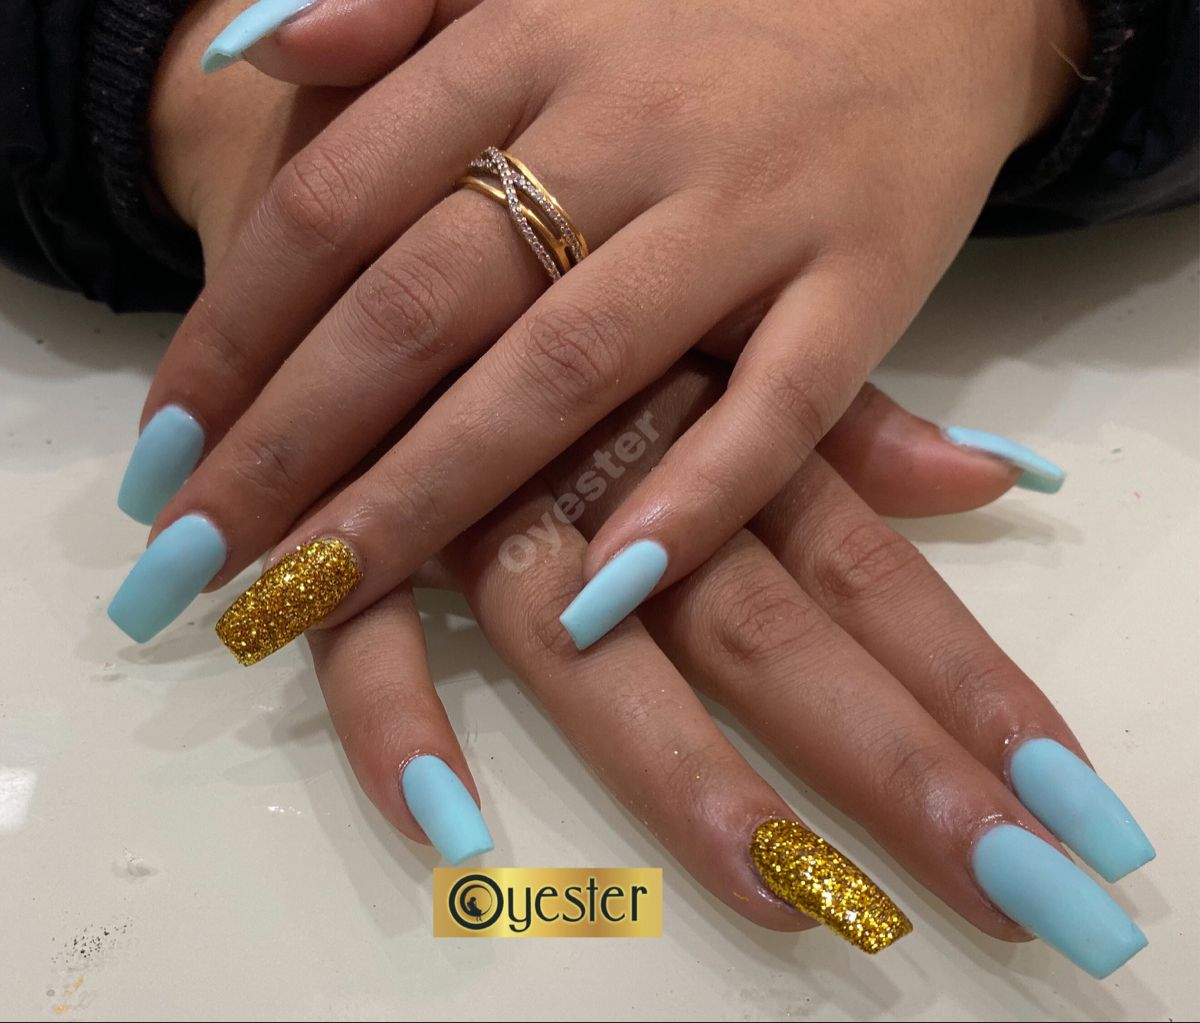 Nail Art And Nail Extensions Services And International Courses Oyesterludhiana Oyesterinternational Beauty Beautician Nai In 2020 Nail Extensions Nail Art Nails